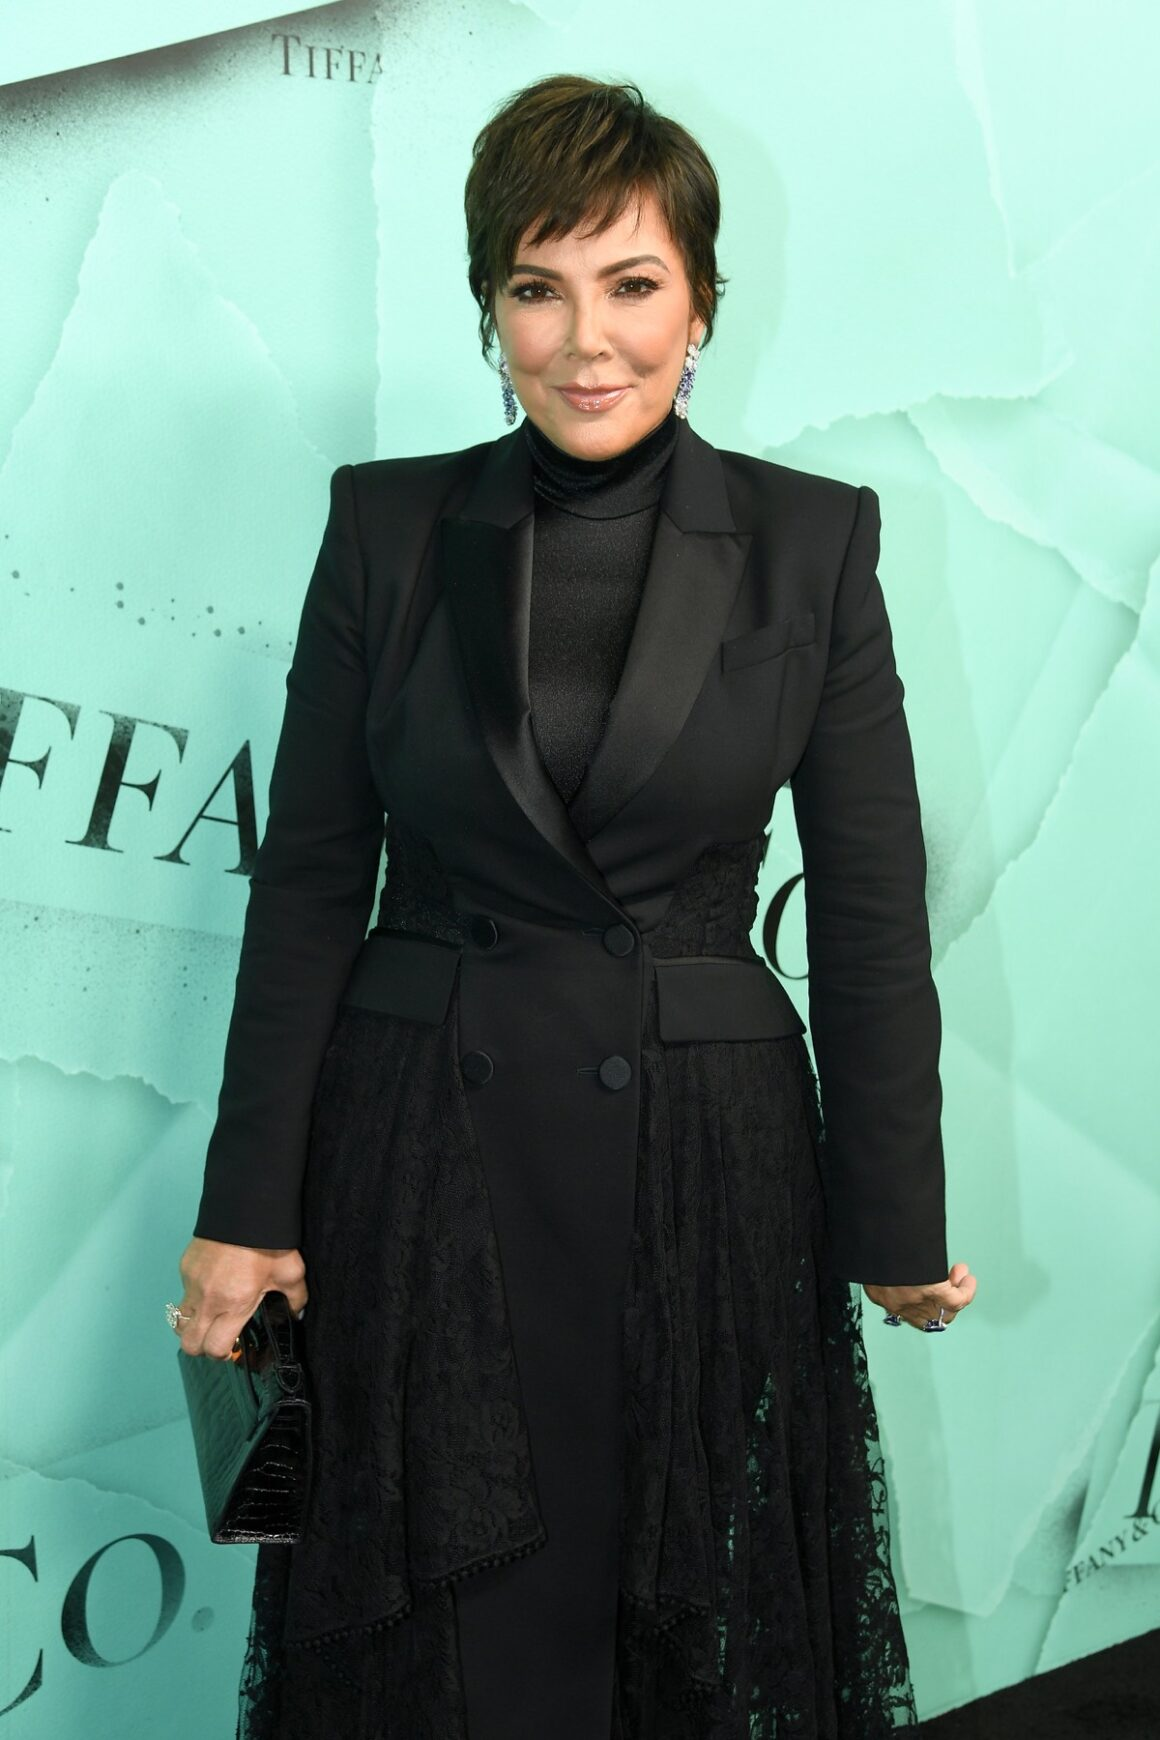 Kris Jenner Tiffany & Co. Celebrates 2018 Tiffany Blue Book Collection, THE FOUR SEASONS OF TIFFANY - Arrivals